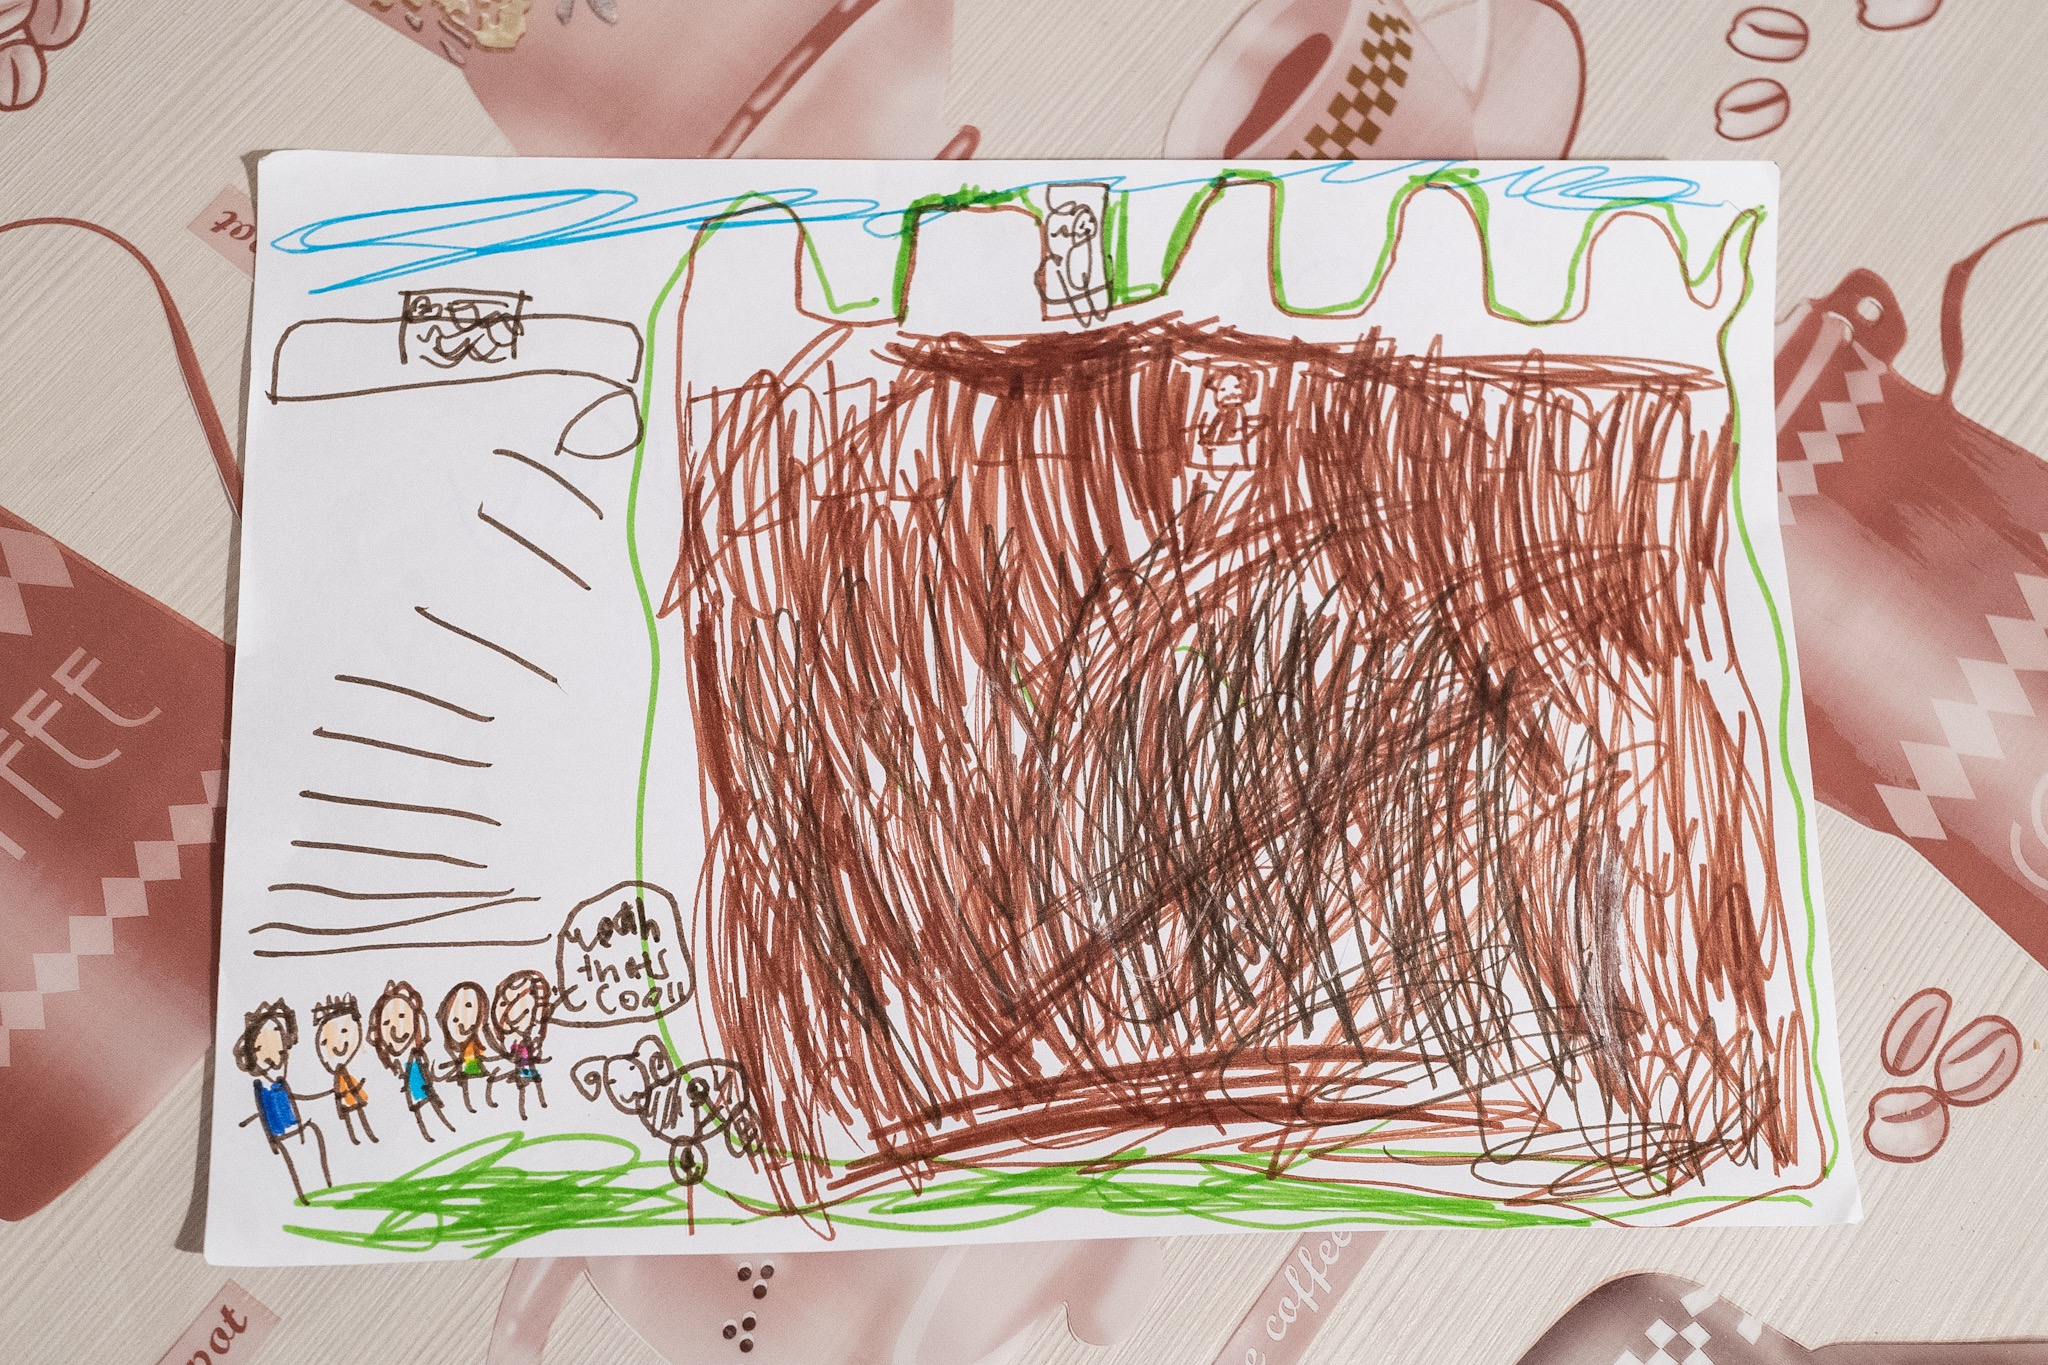 Audrey's drawing of the castle at Monteriggioni, quite accurate!